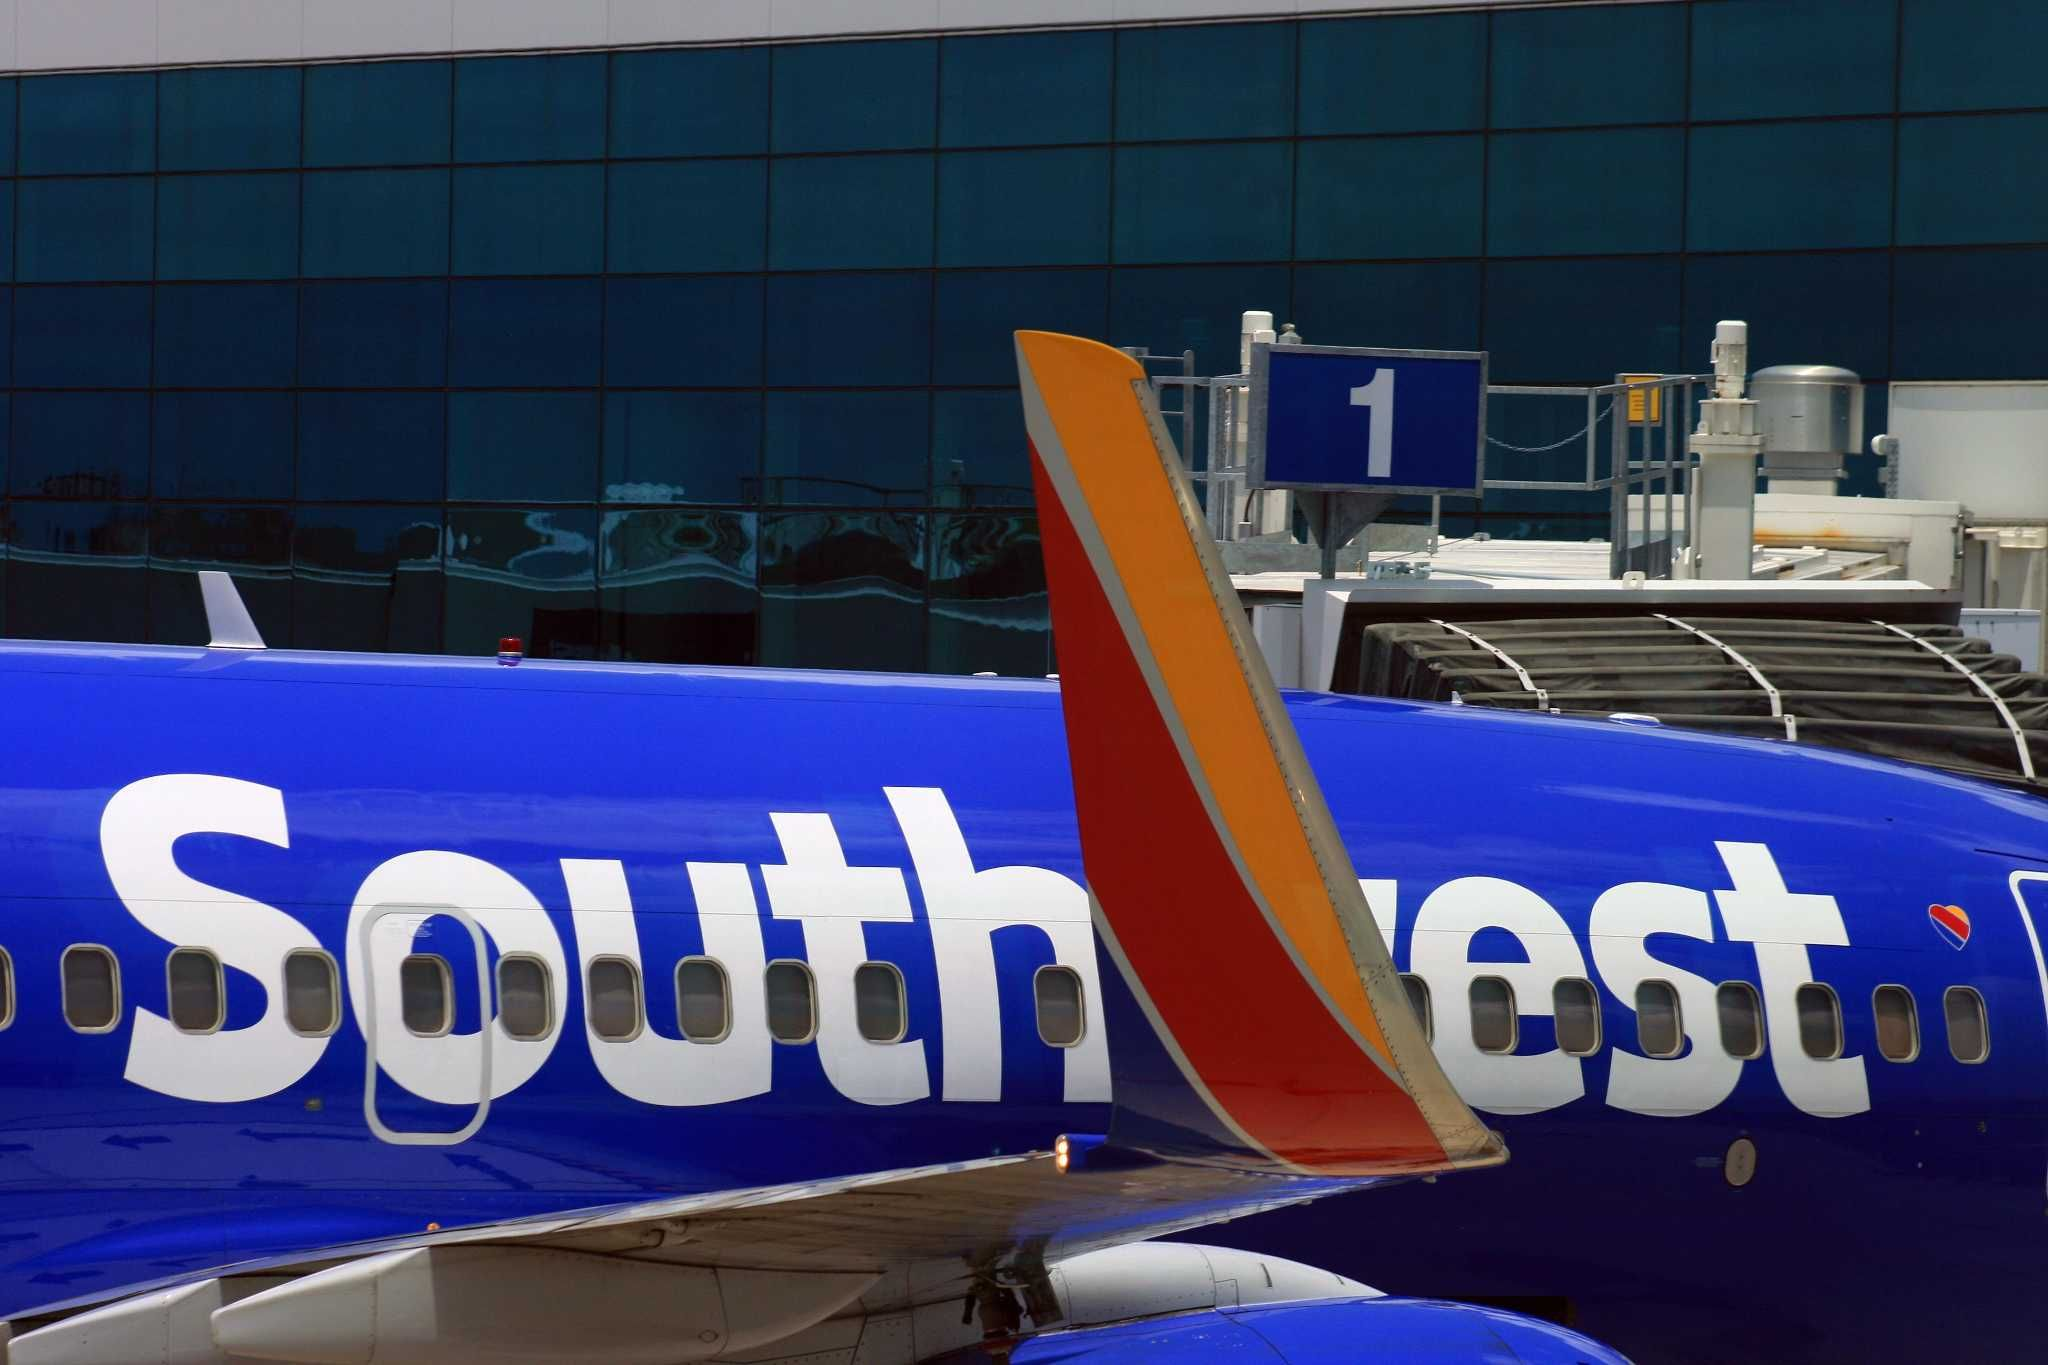 Southwest to provide free movies on its flights